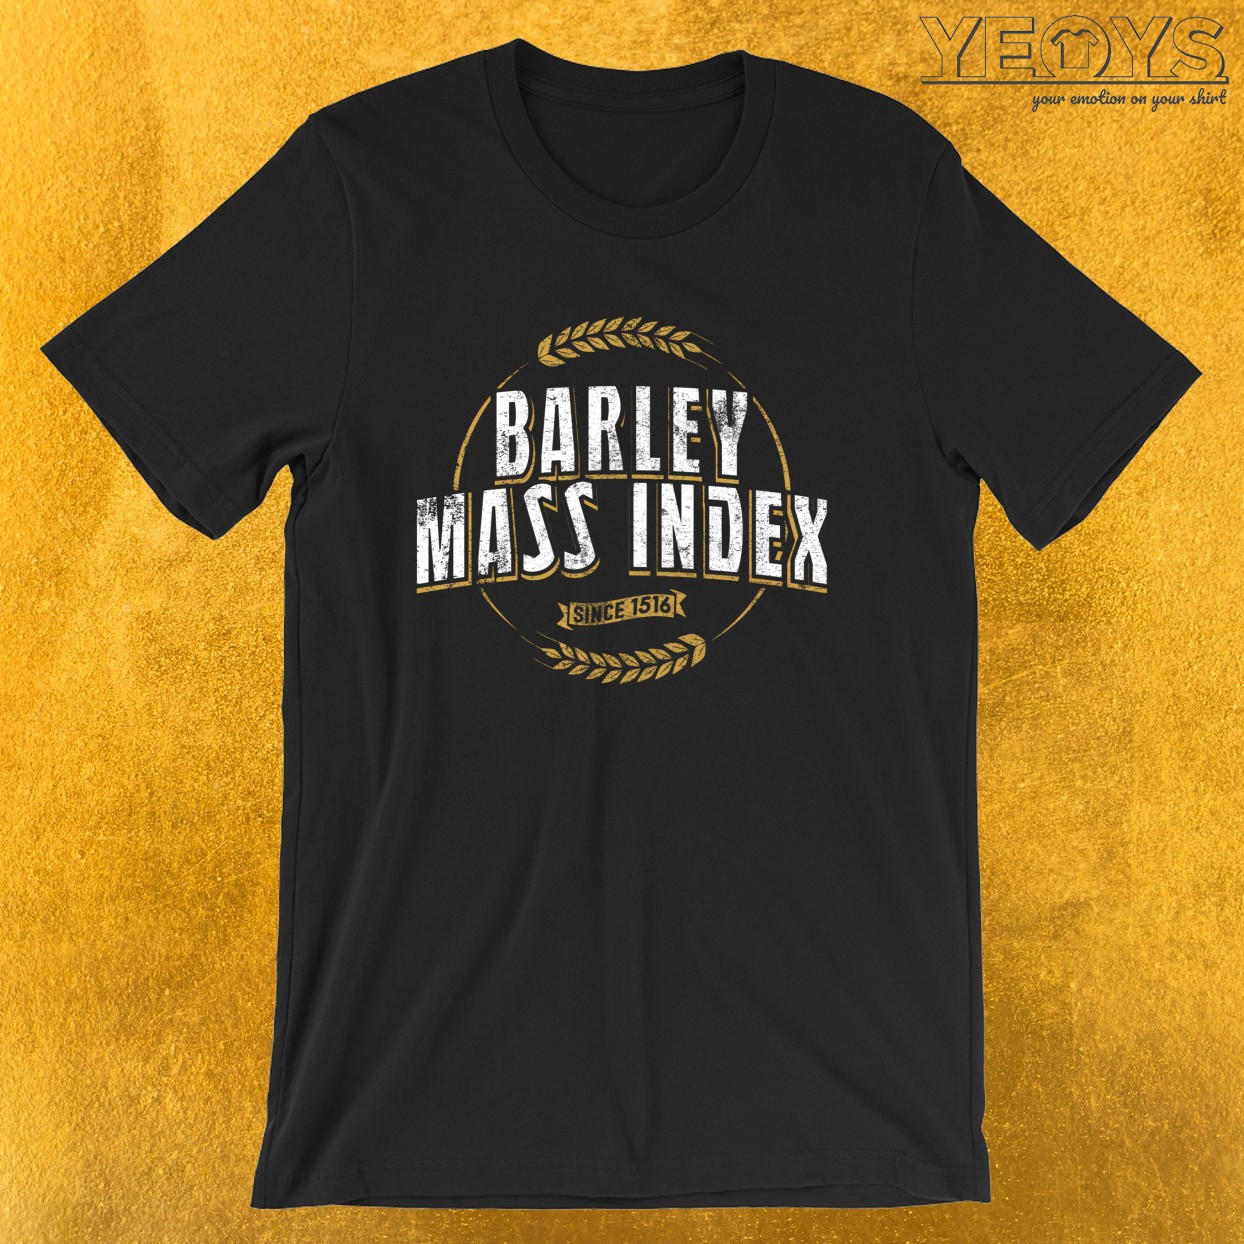 Barley Mass Index Since 1516 – Reinheitsgebot Tee